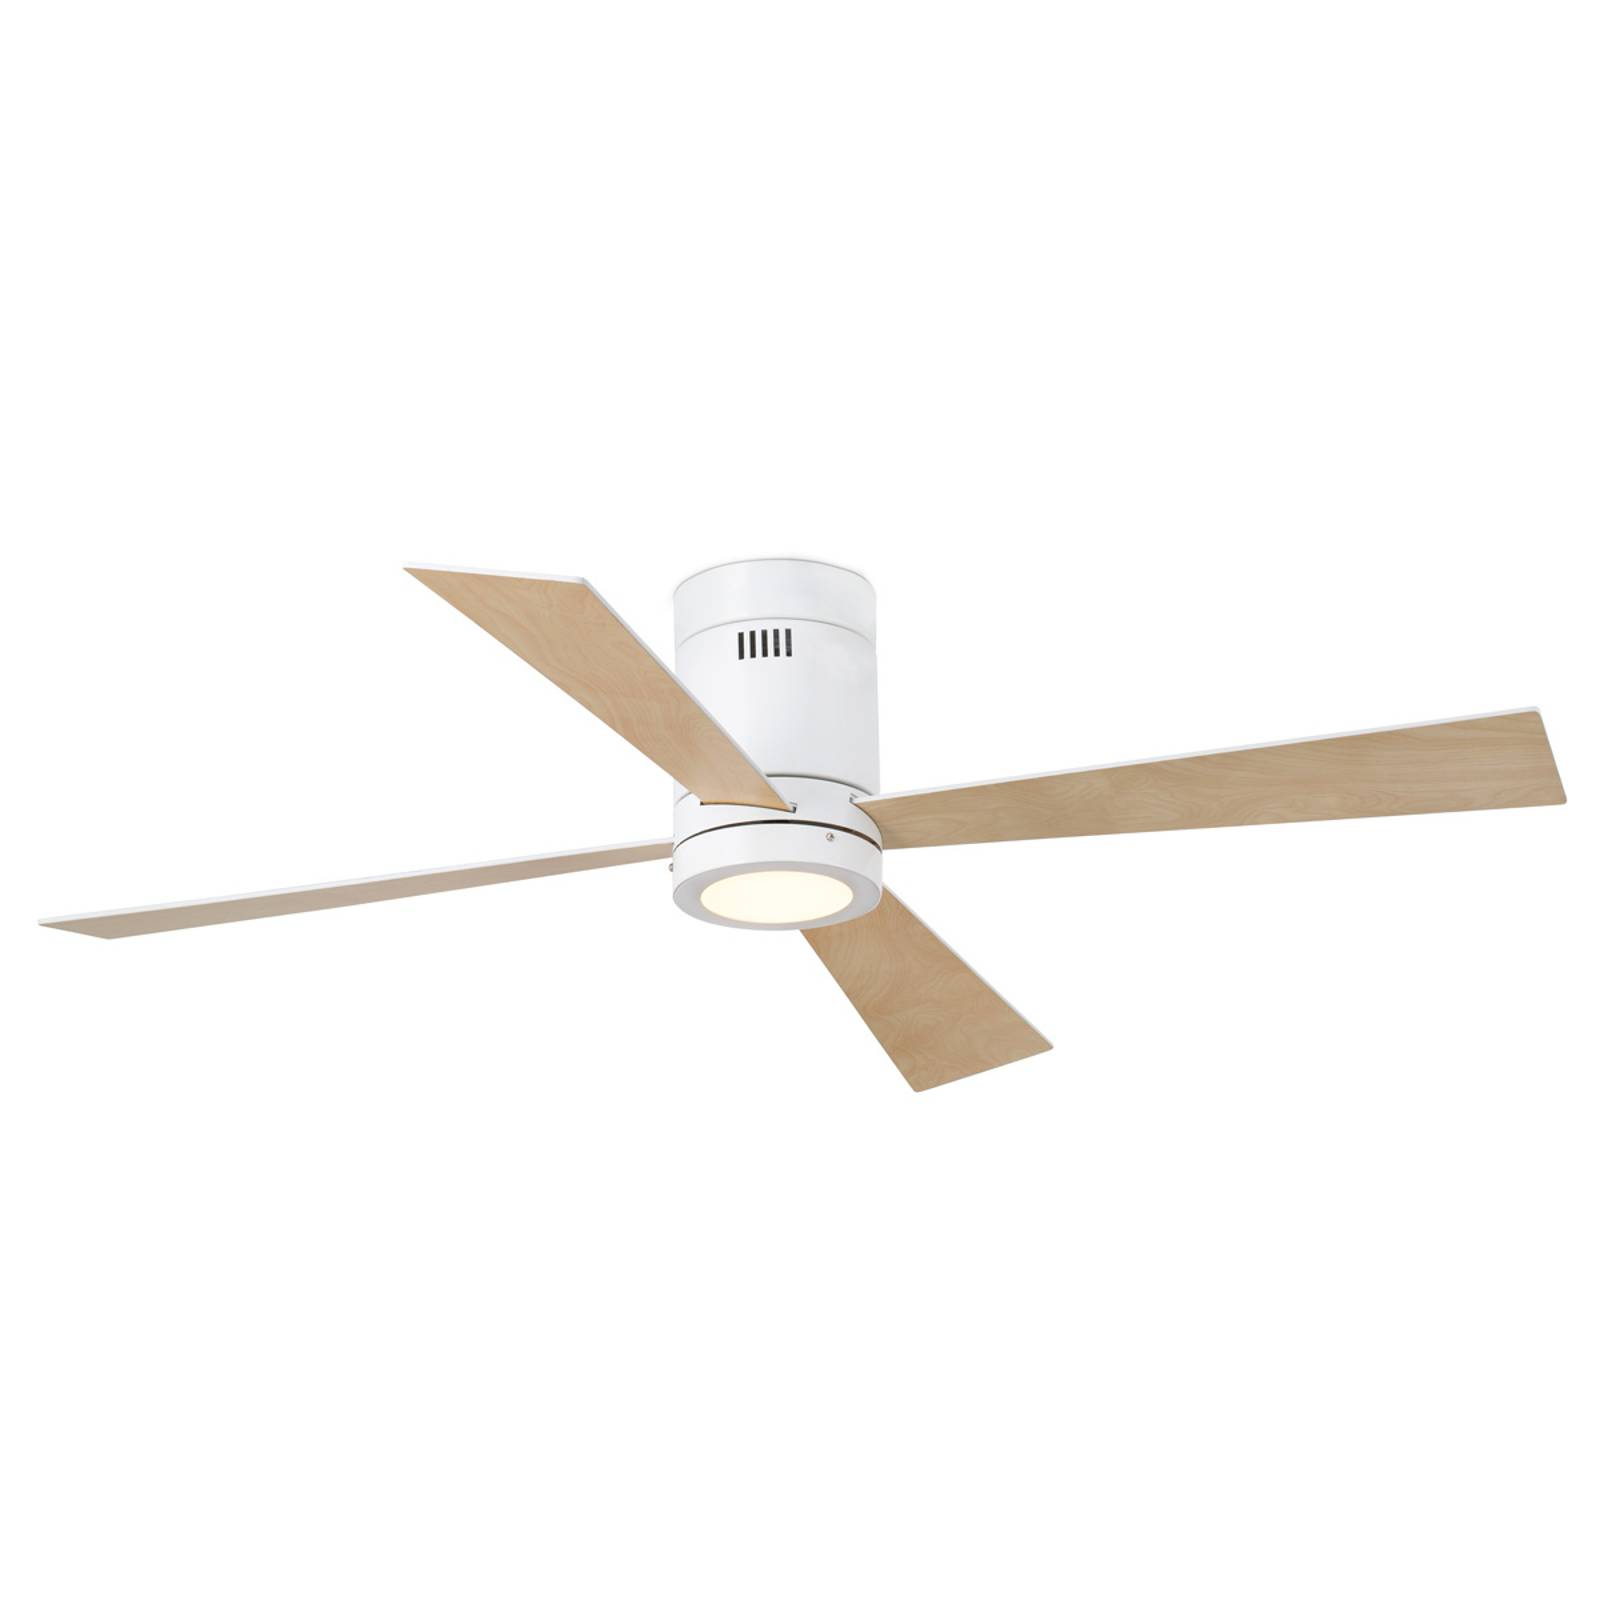 Timor four-blade ceiling fan with LED